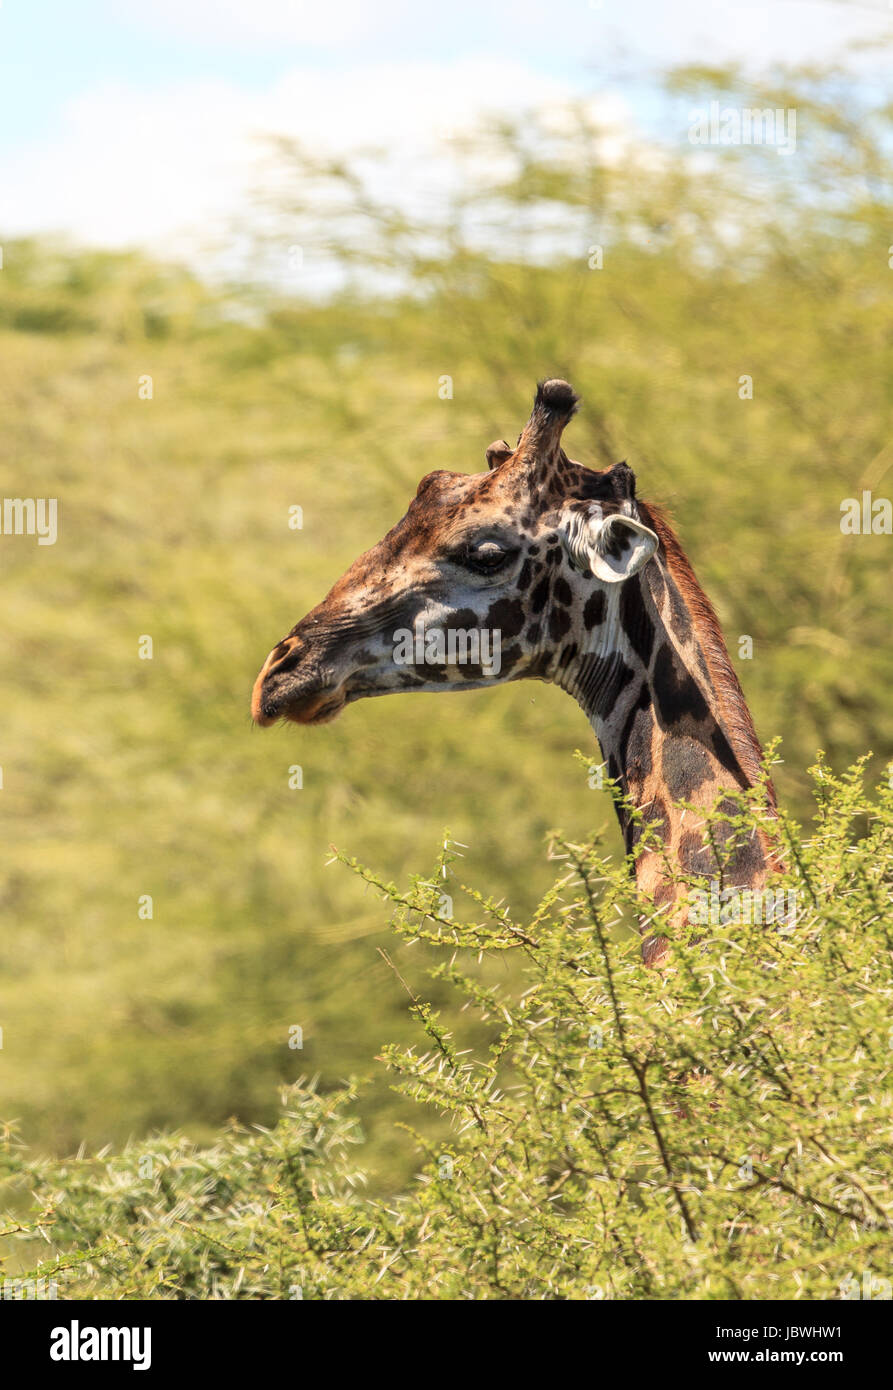 A portrait of a Masai Giraffe - Stock Image